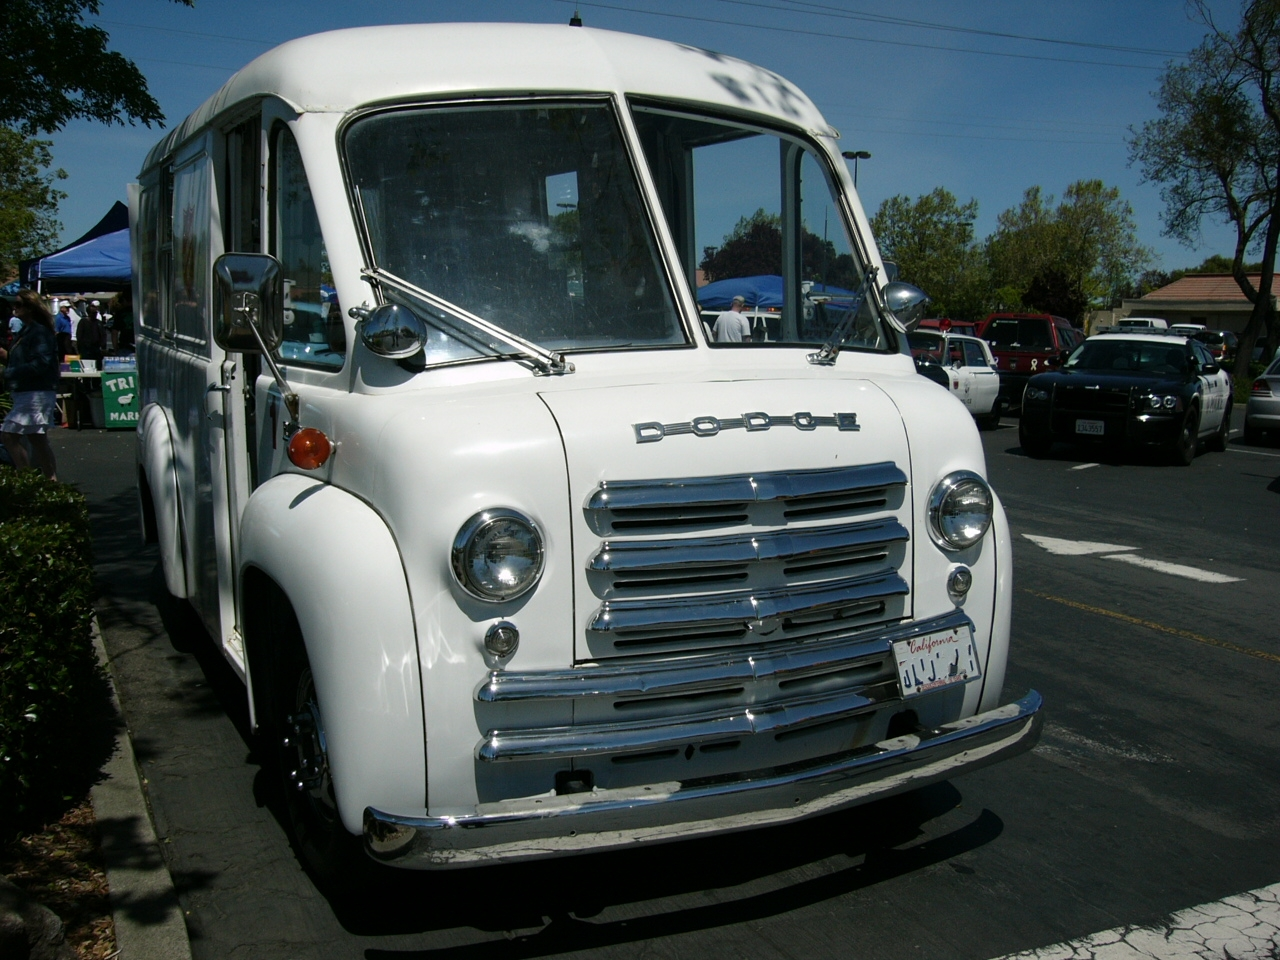 1951 Dodge Route Van by